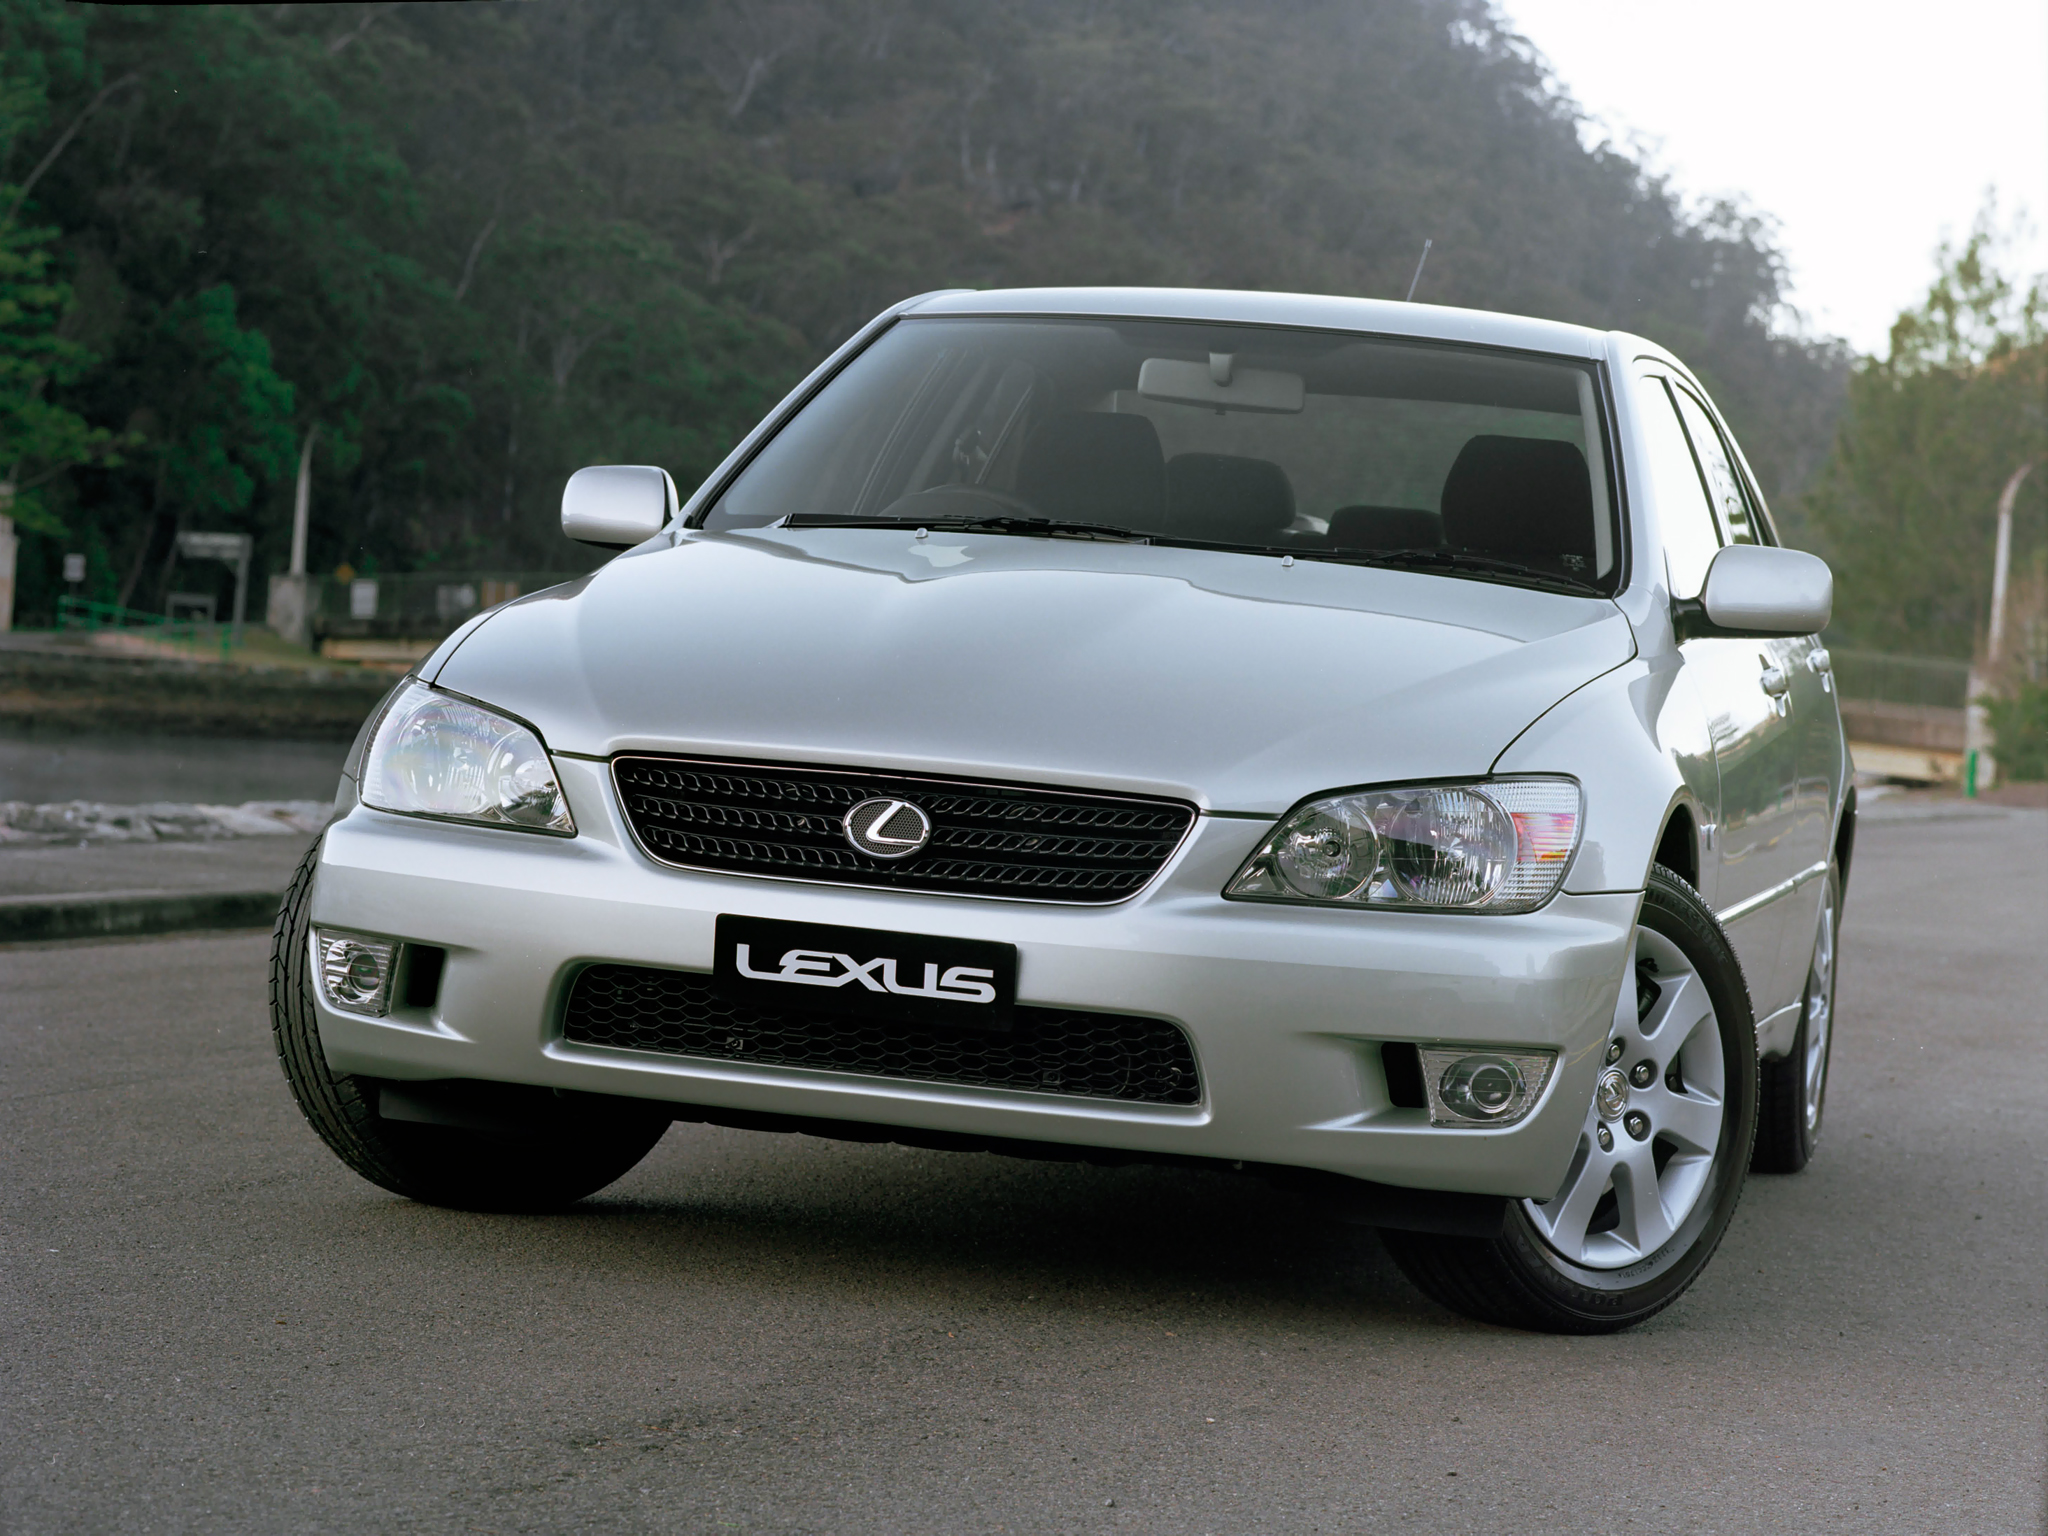 Lexus IS Sedan 2003